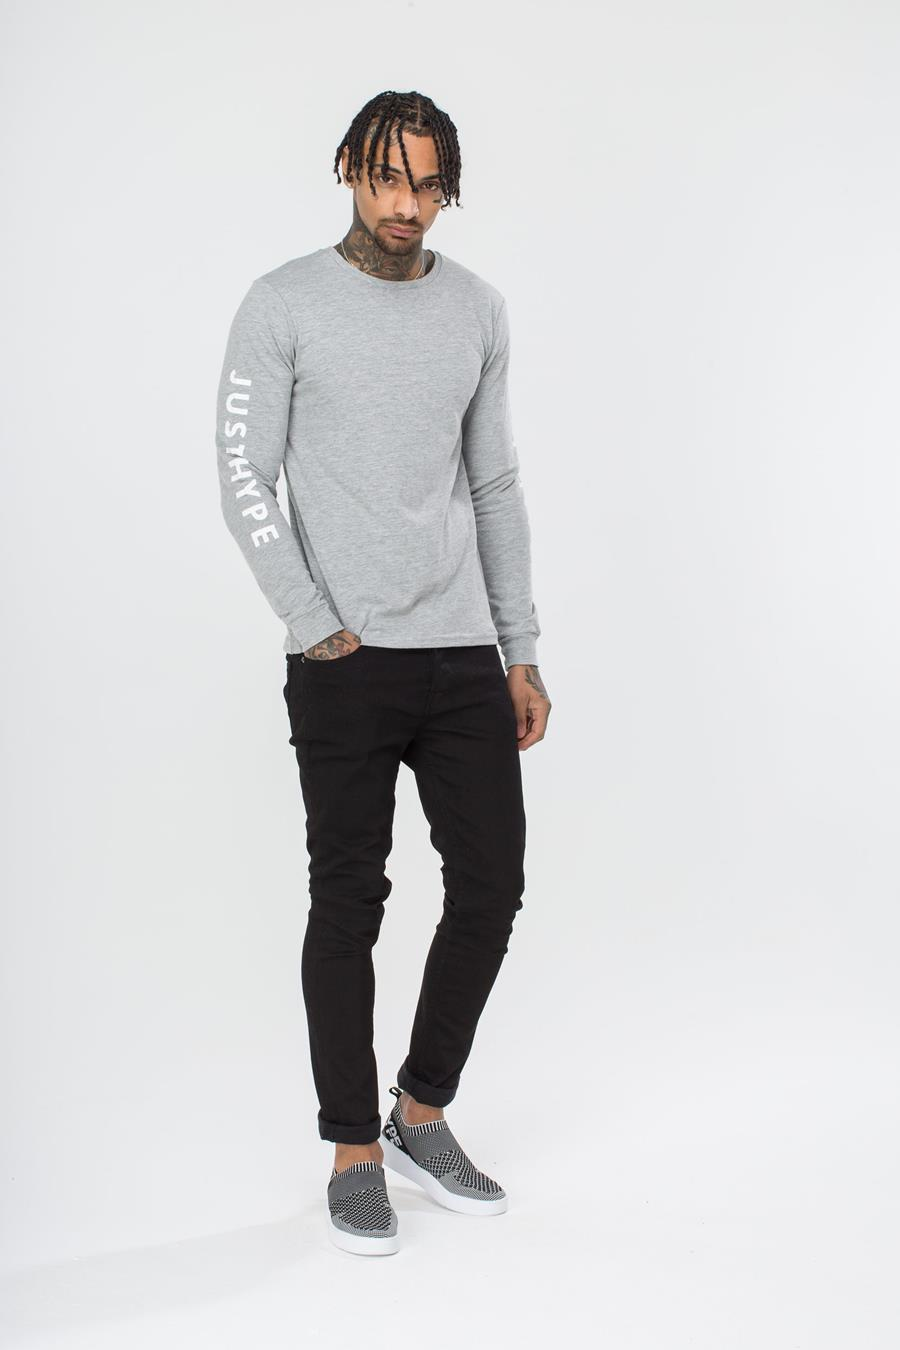 HYPE GREY JUSTHYPE MEN'S L/S T-SHIRT